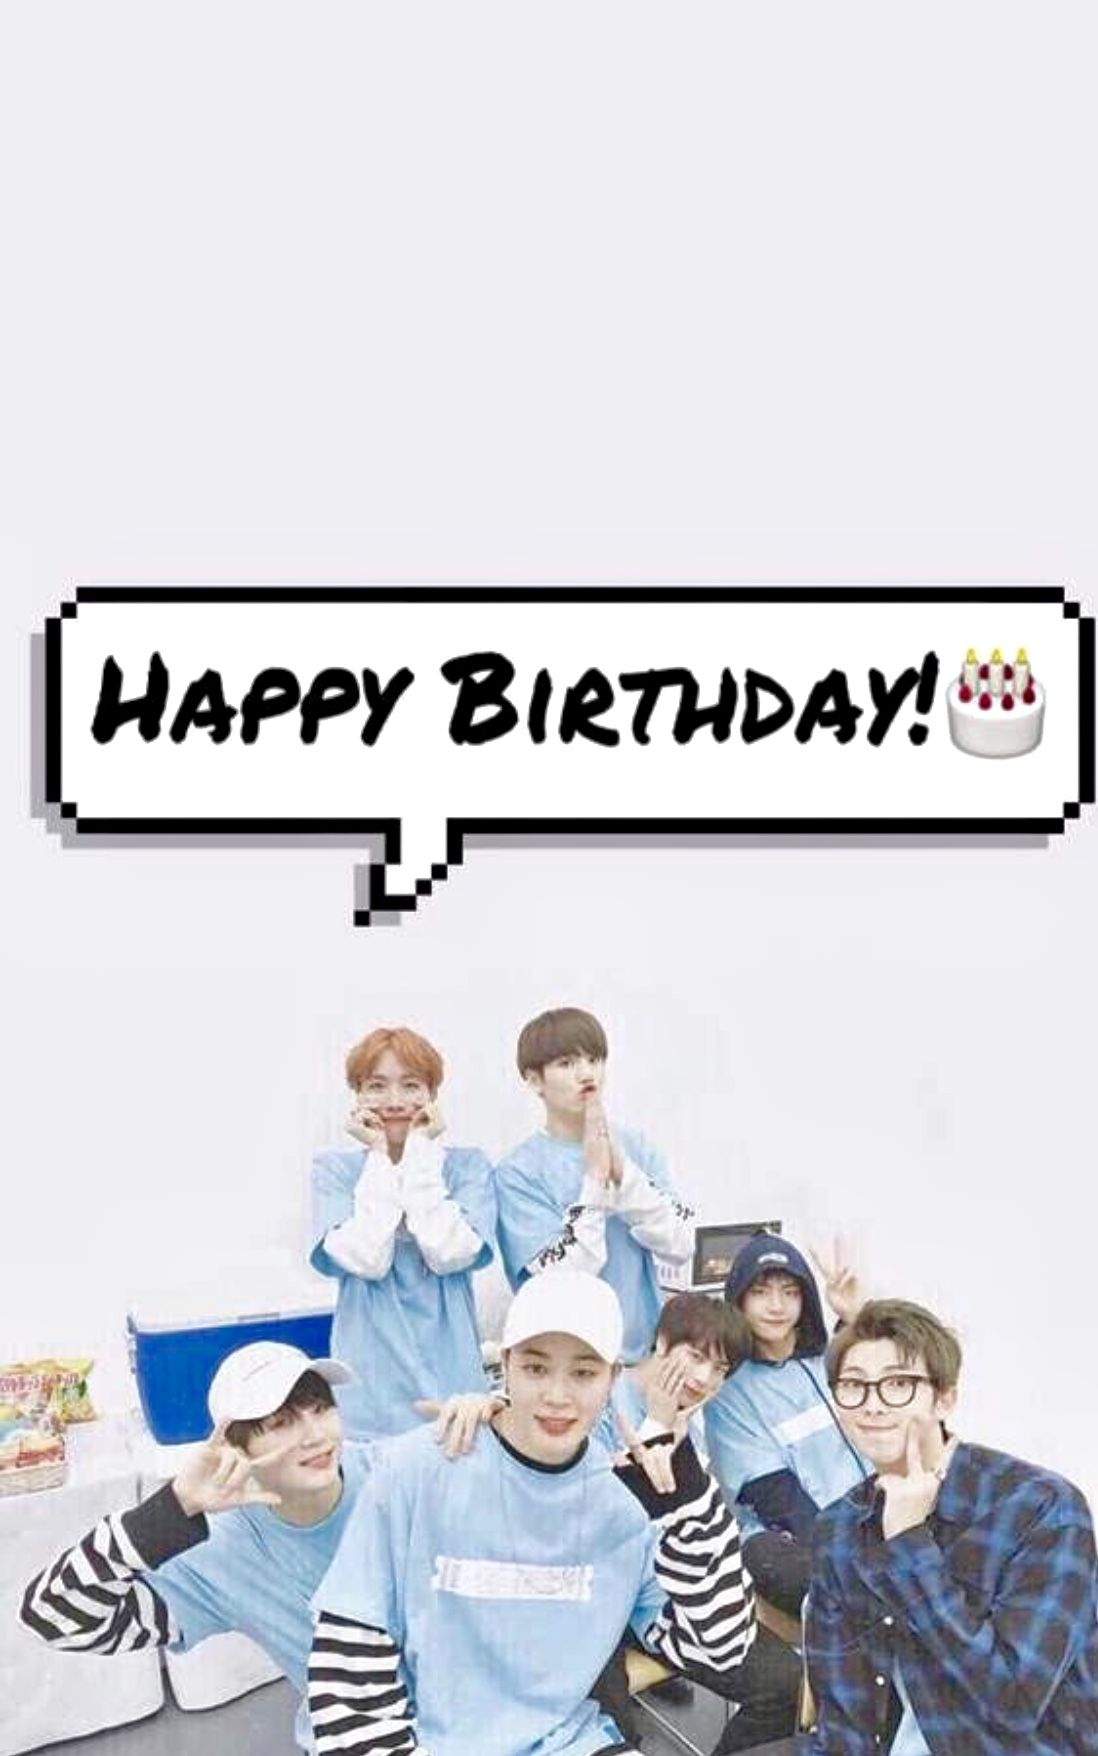 Bts Is Wishing You Happy Birthday Bts Happy Birthday Wish You Happy Birthday Happy Birthday Wishes Quotes